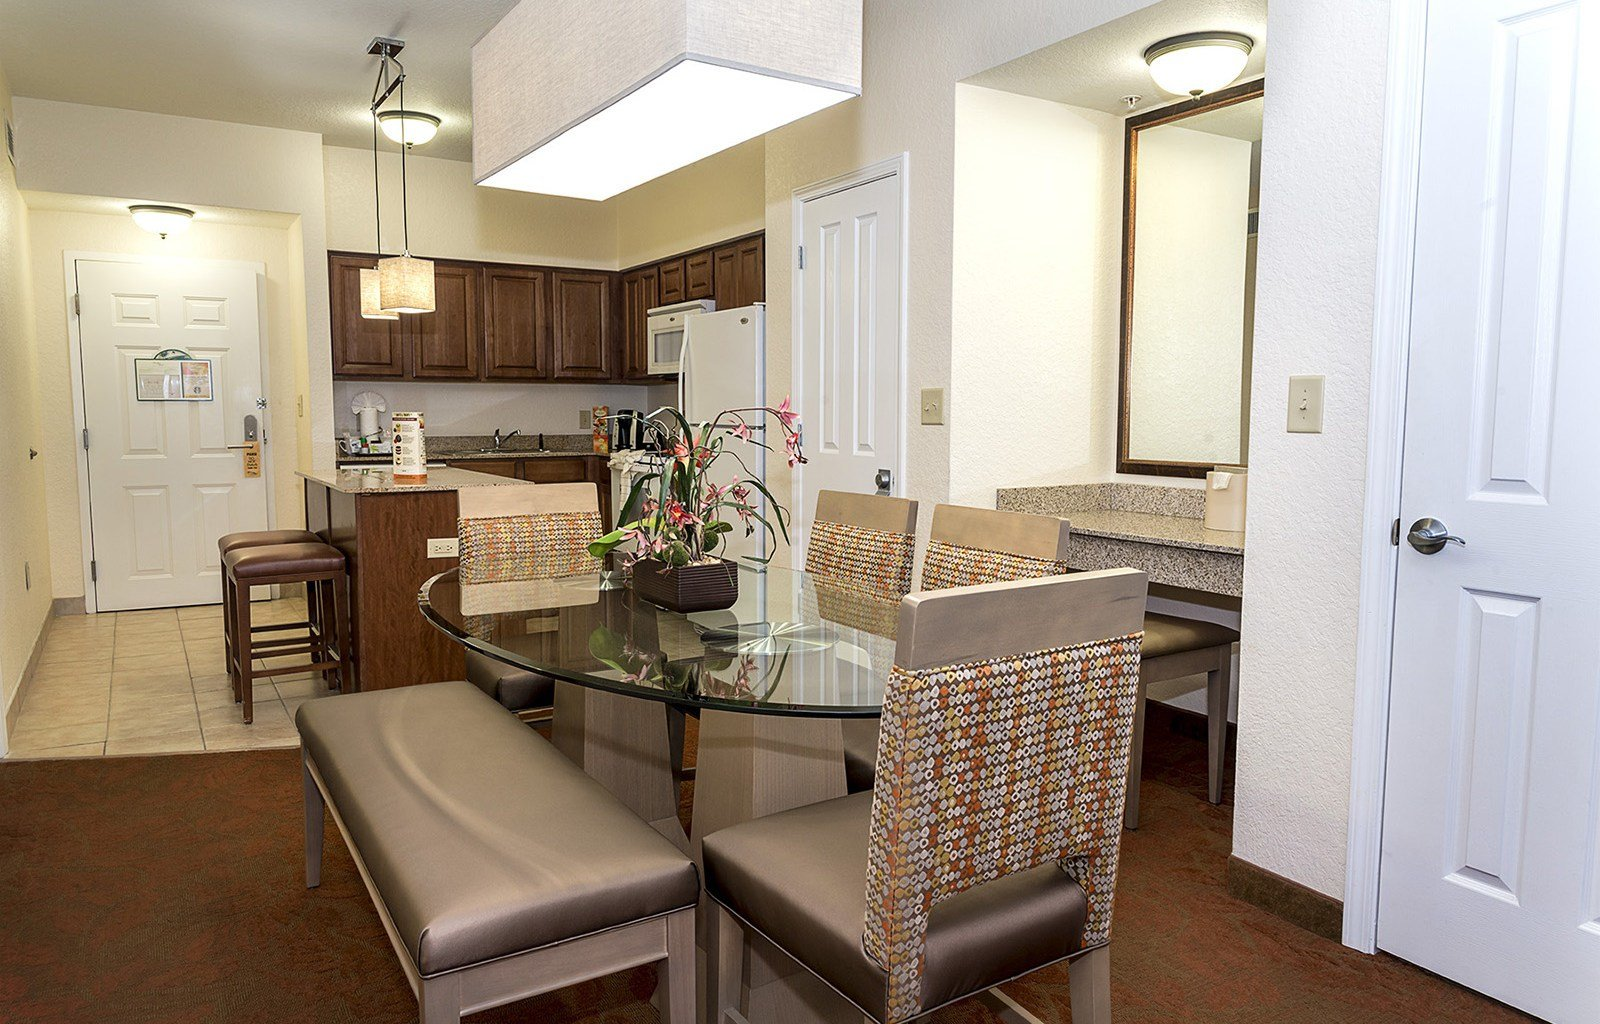 Best Orlando Hotel 2 Bedroom Suites Buyloxitane Com With Pictures